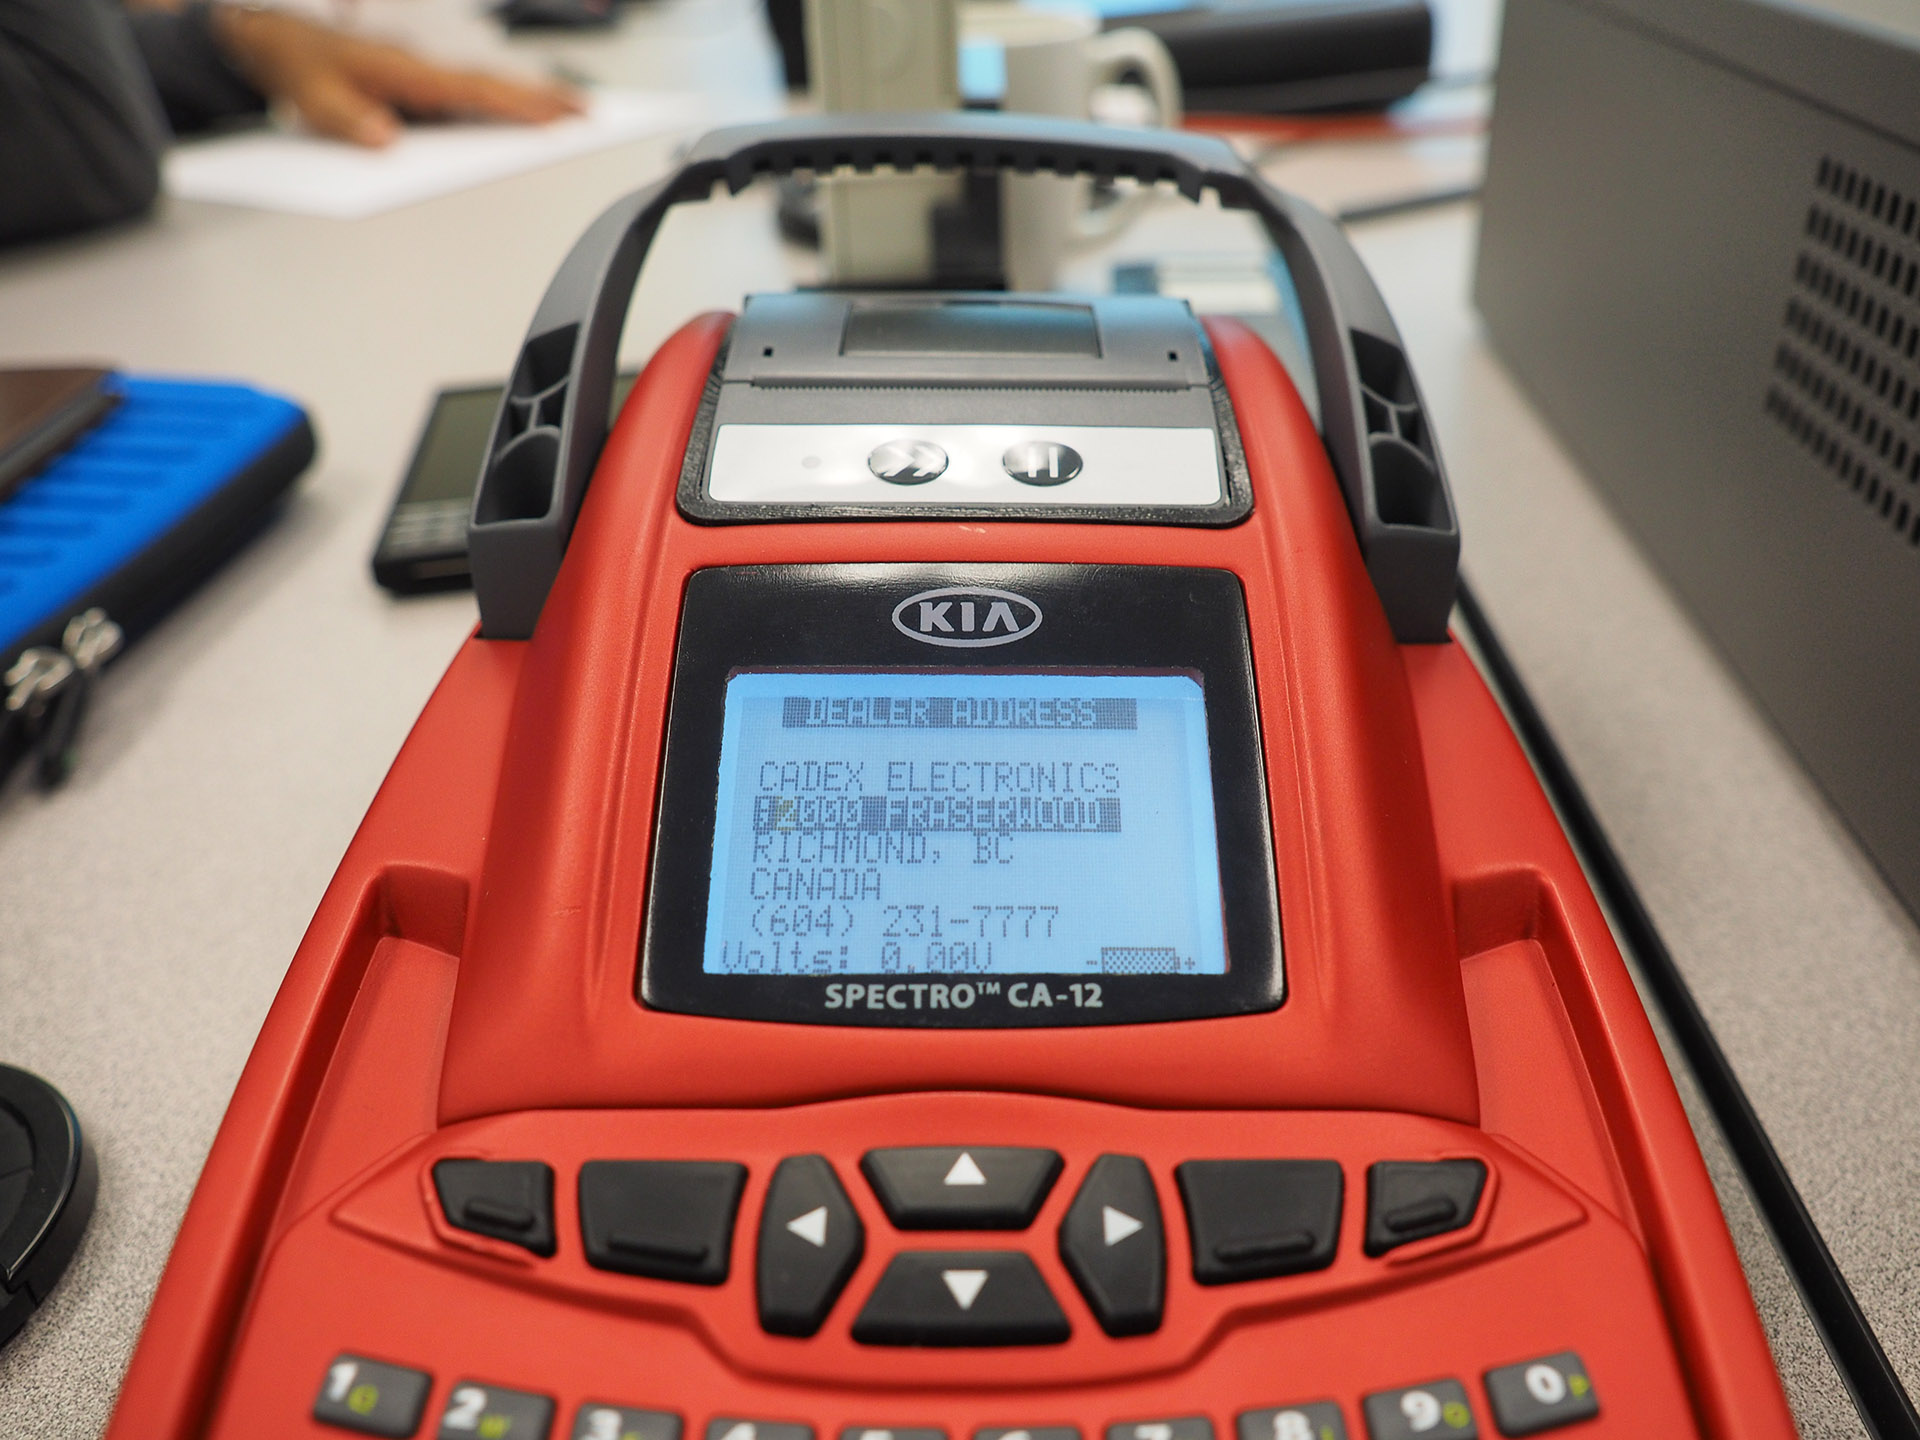 A prototype of the device in red, with a working screen.